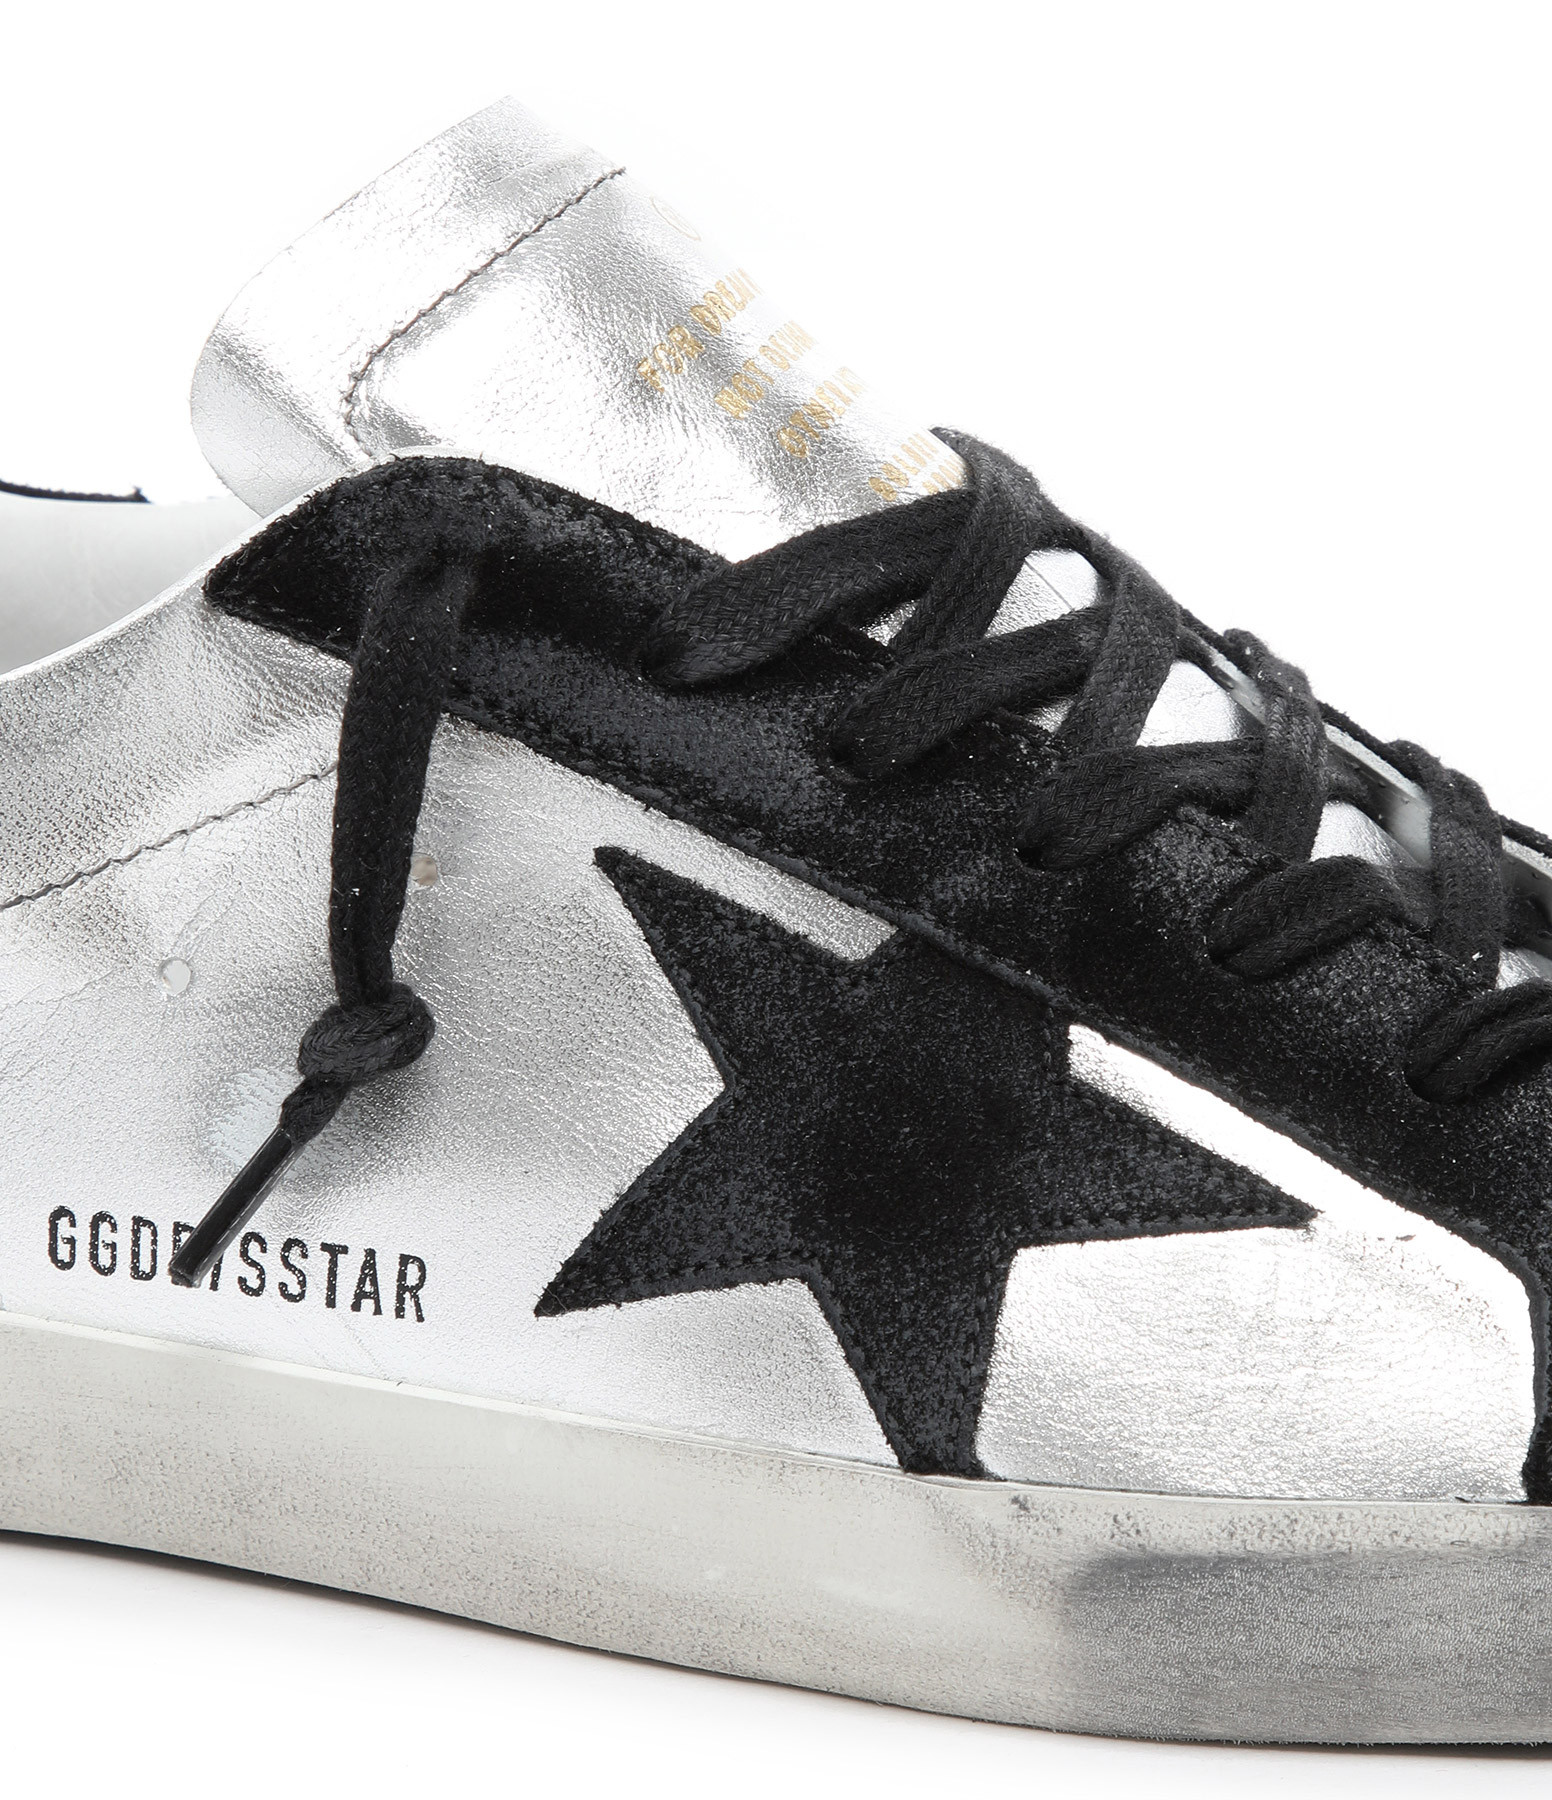 GOLDEN GOOSE - Baskets Superstar Cuir Suédé Lamé Argenté